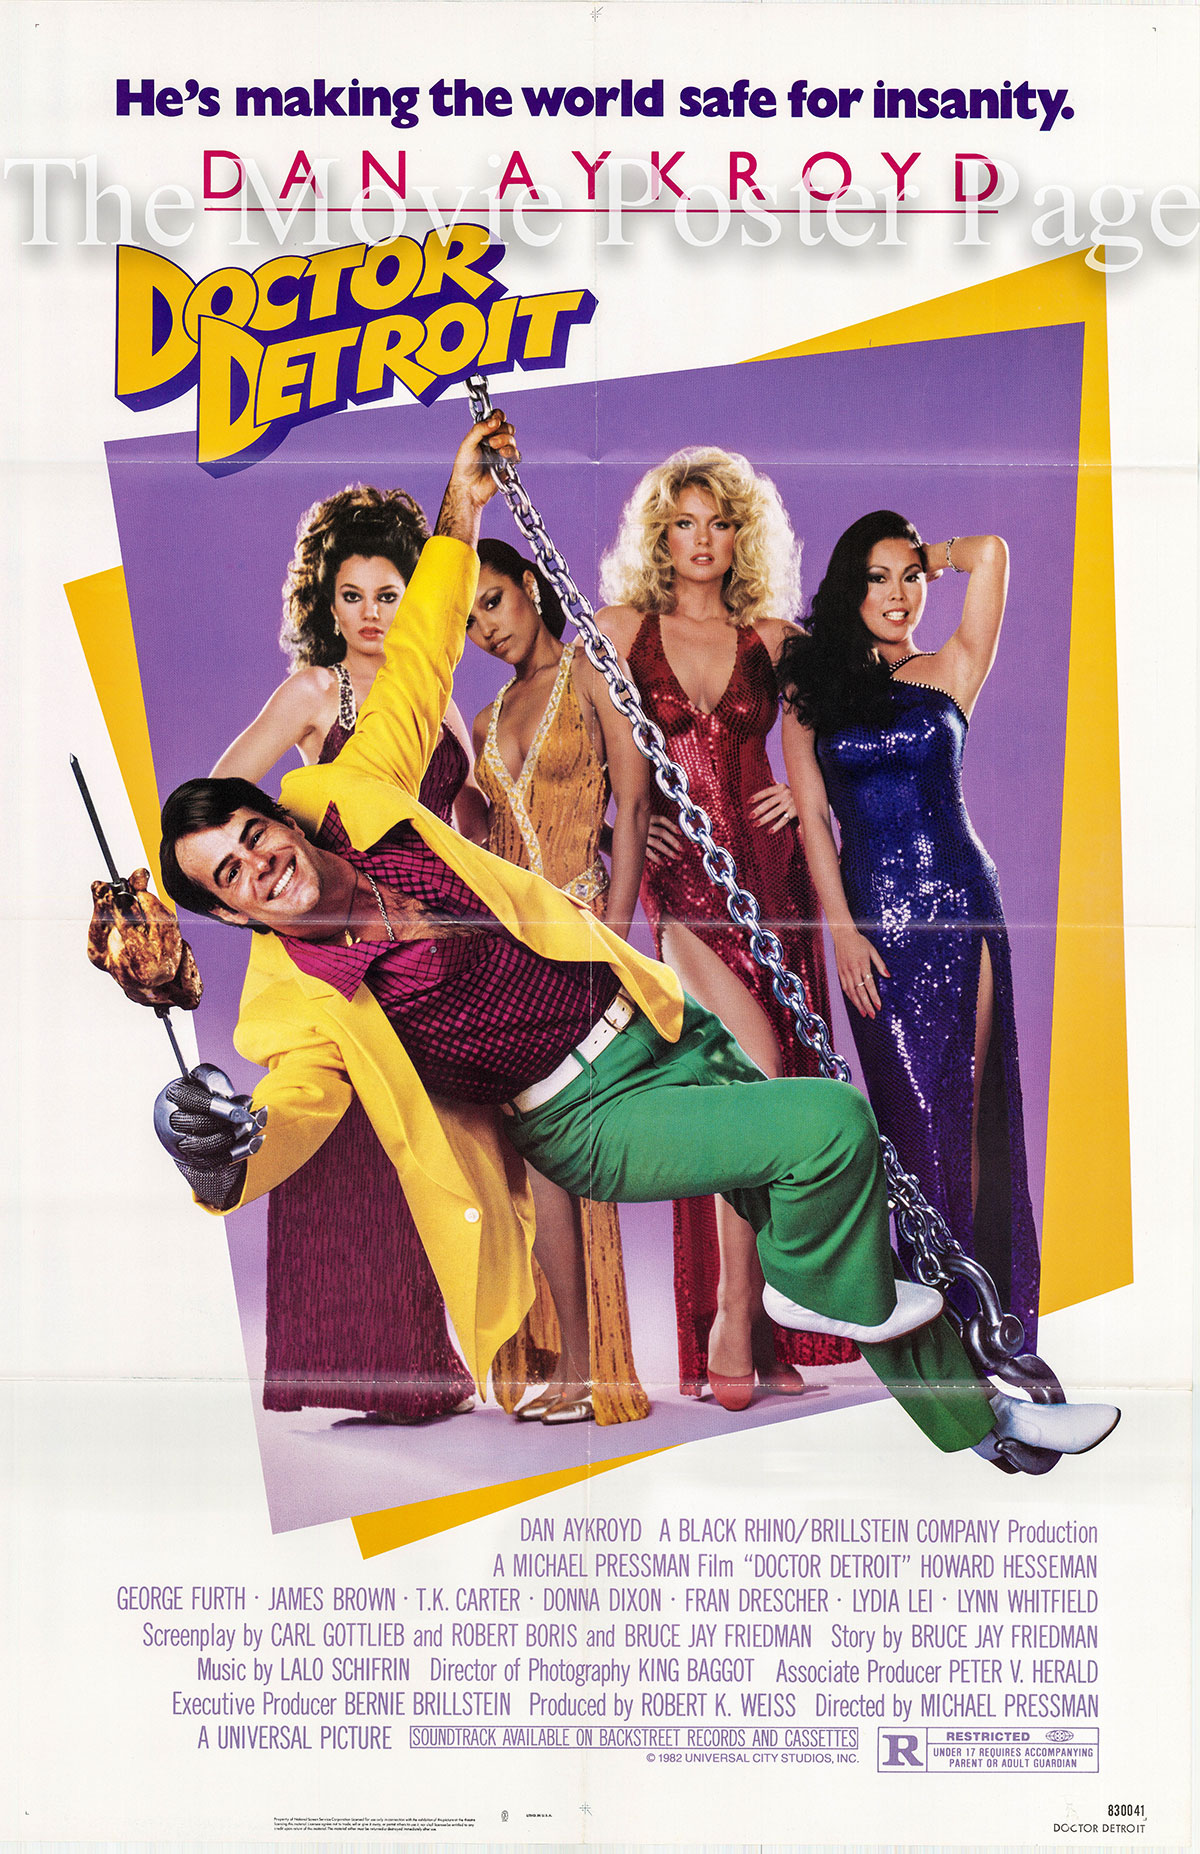 Pictured is a US one-sheet poster for the 1983 Michael Pressman film Doctor Detroit starring Dan Aykroyd.